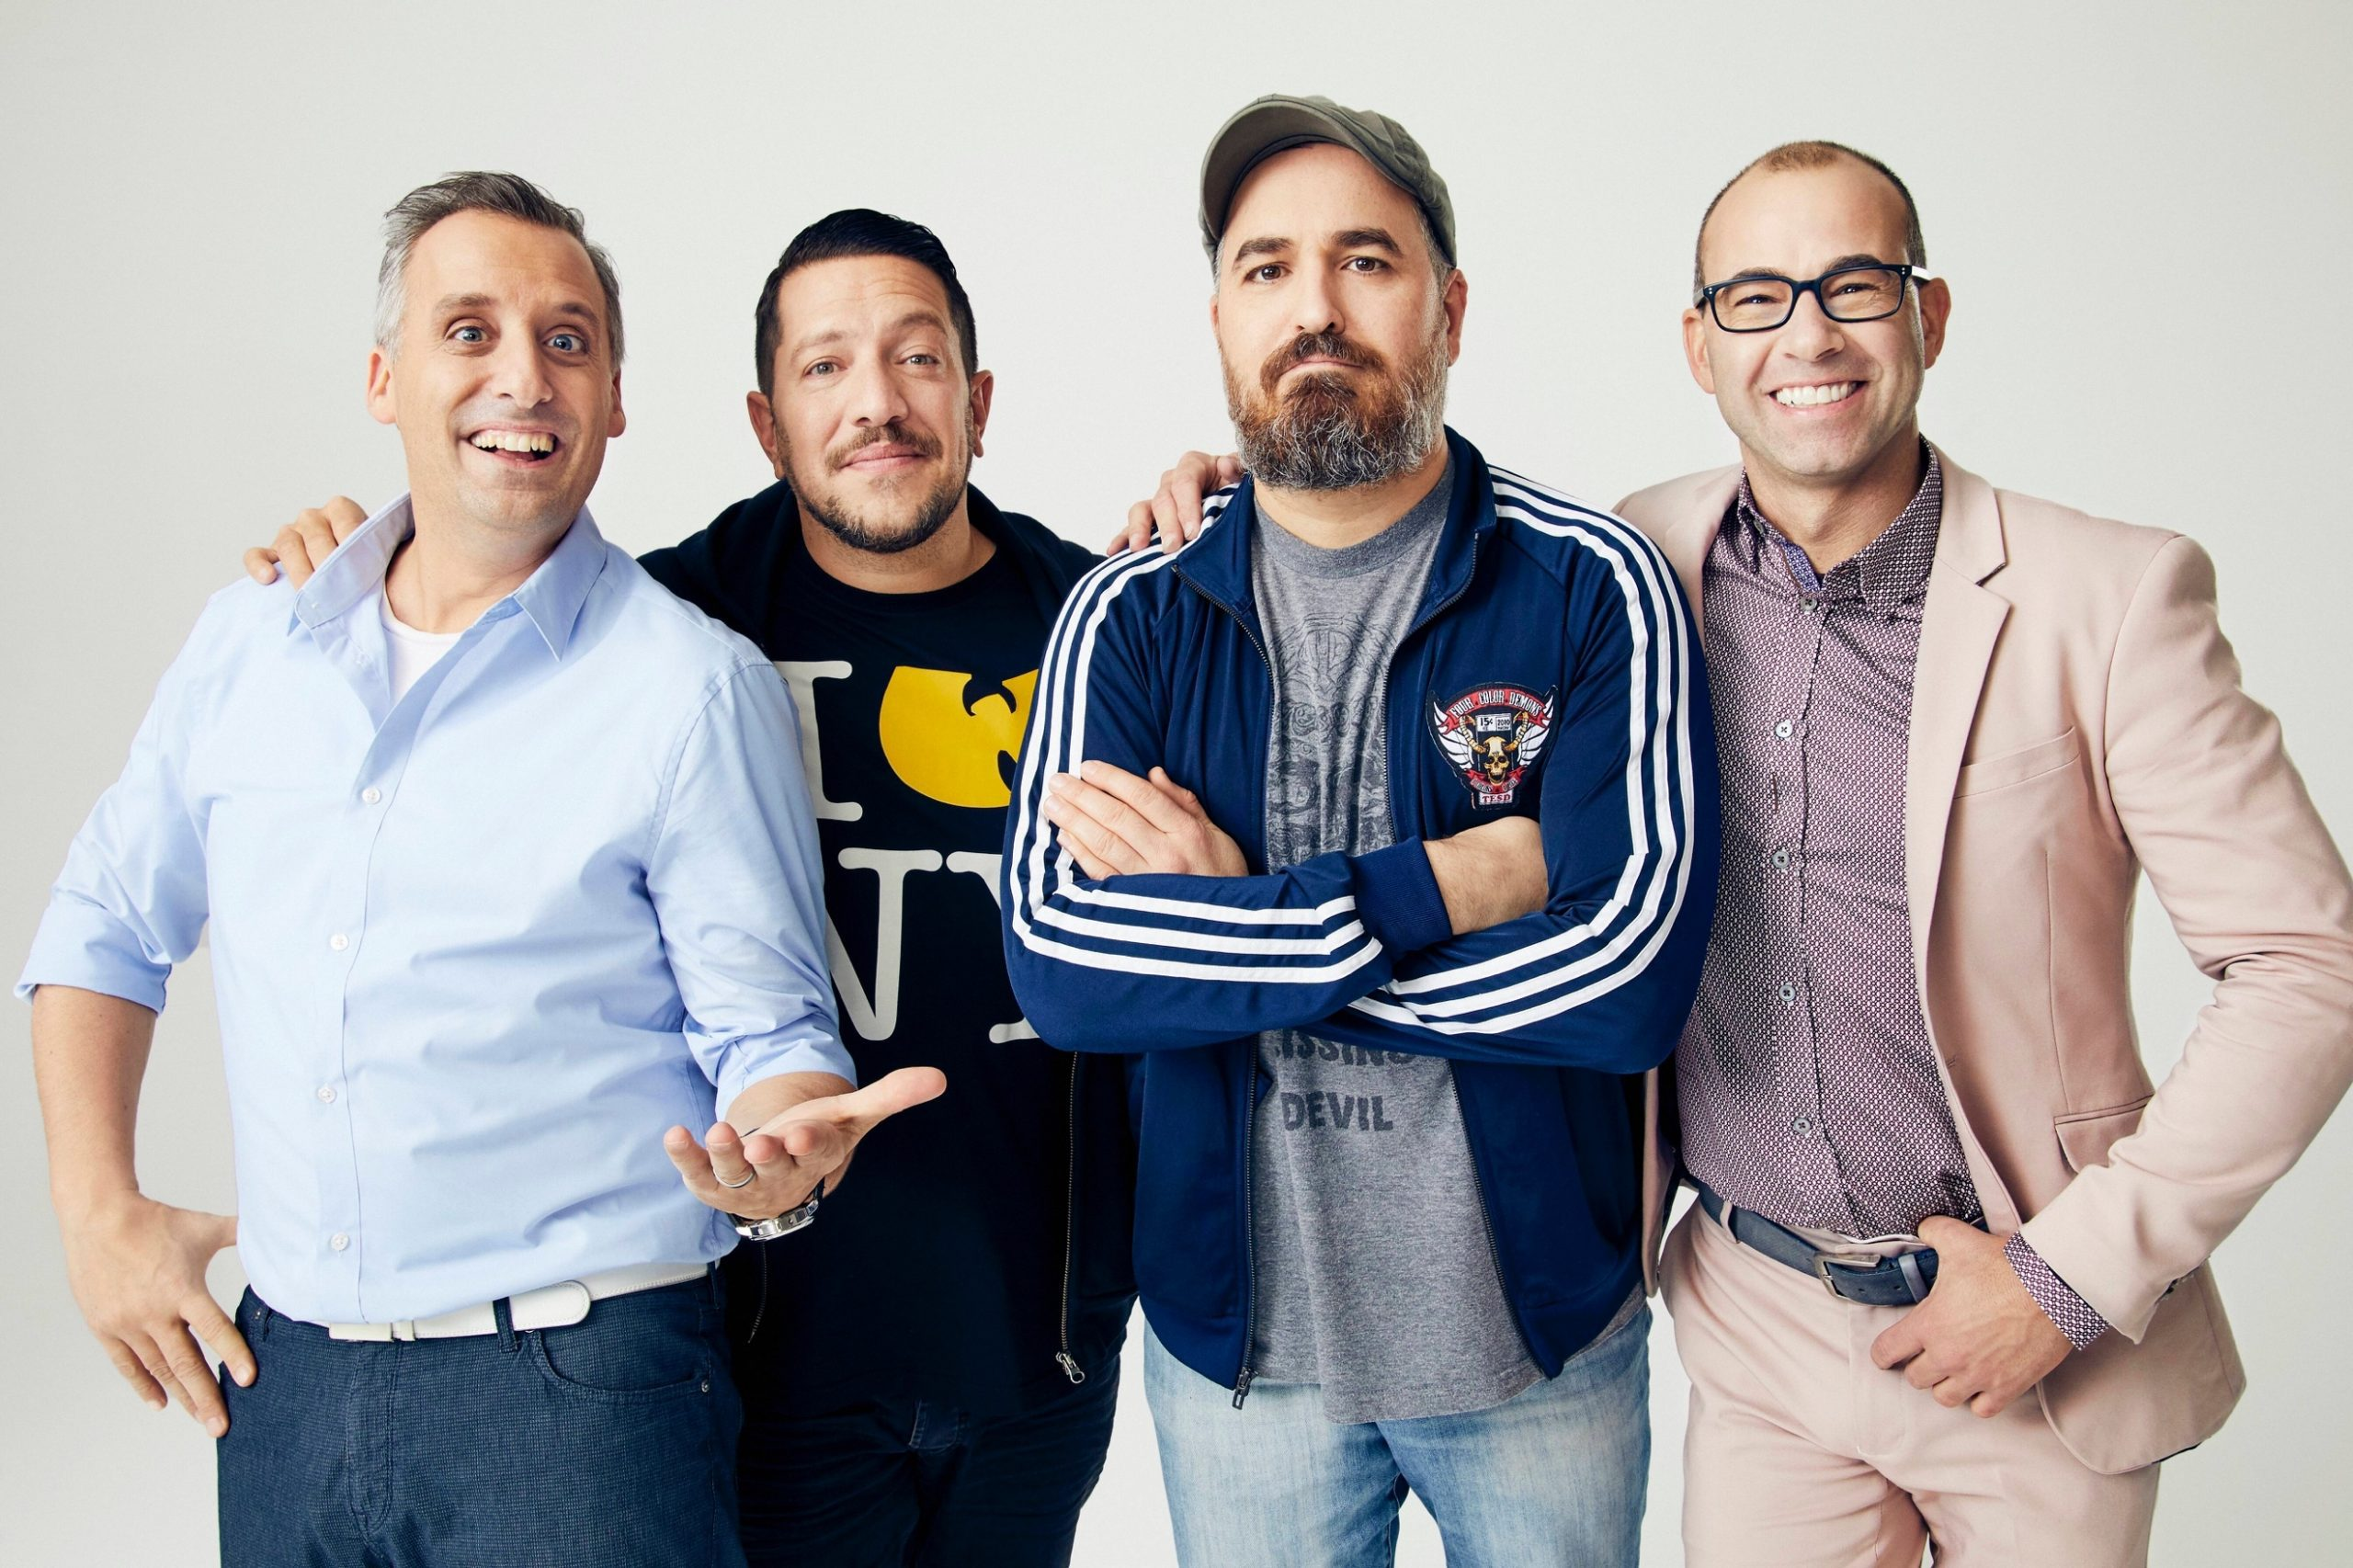 How And Where To Watch Impractical Jokers Season 9 Online?